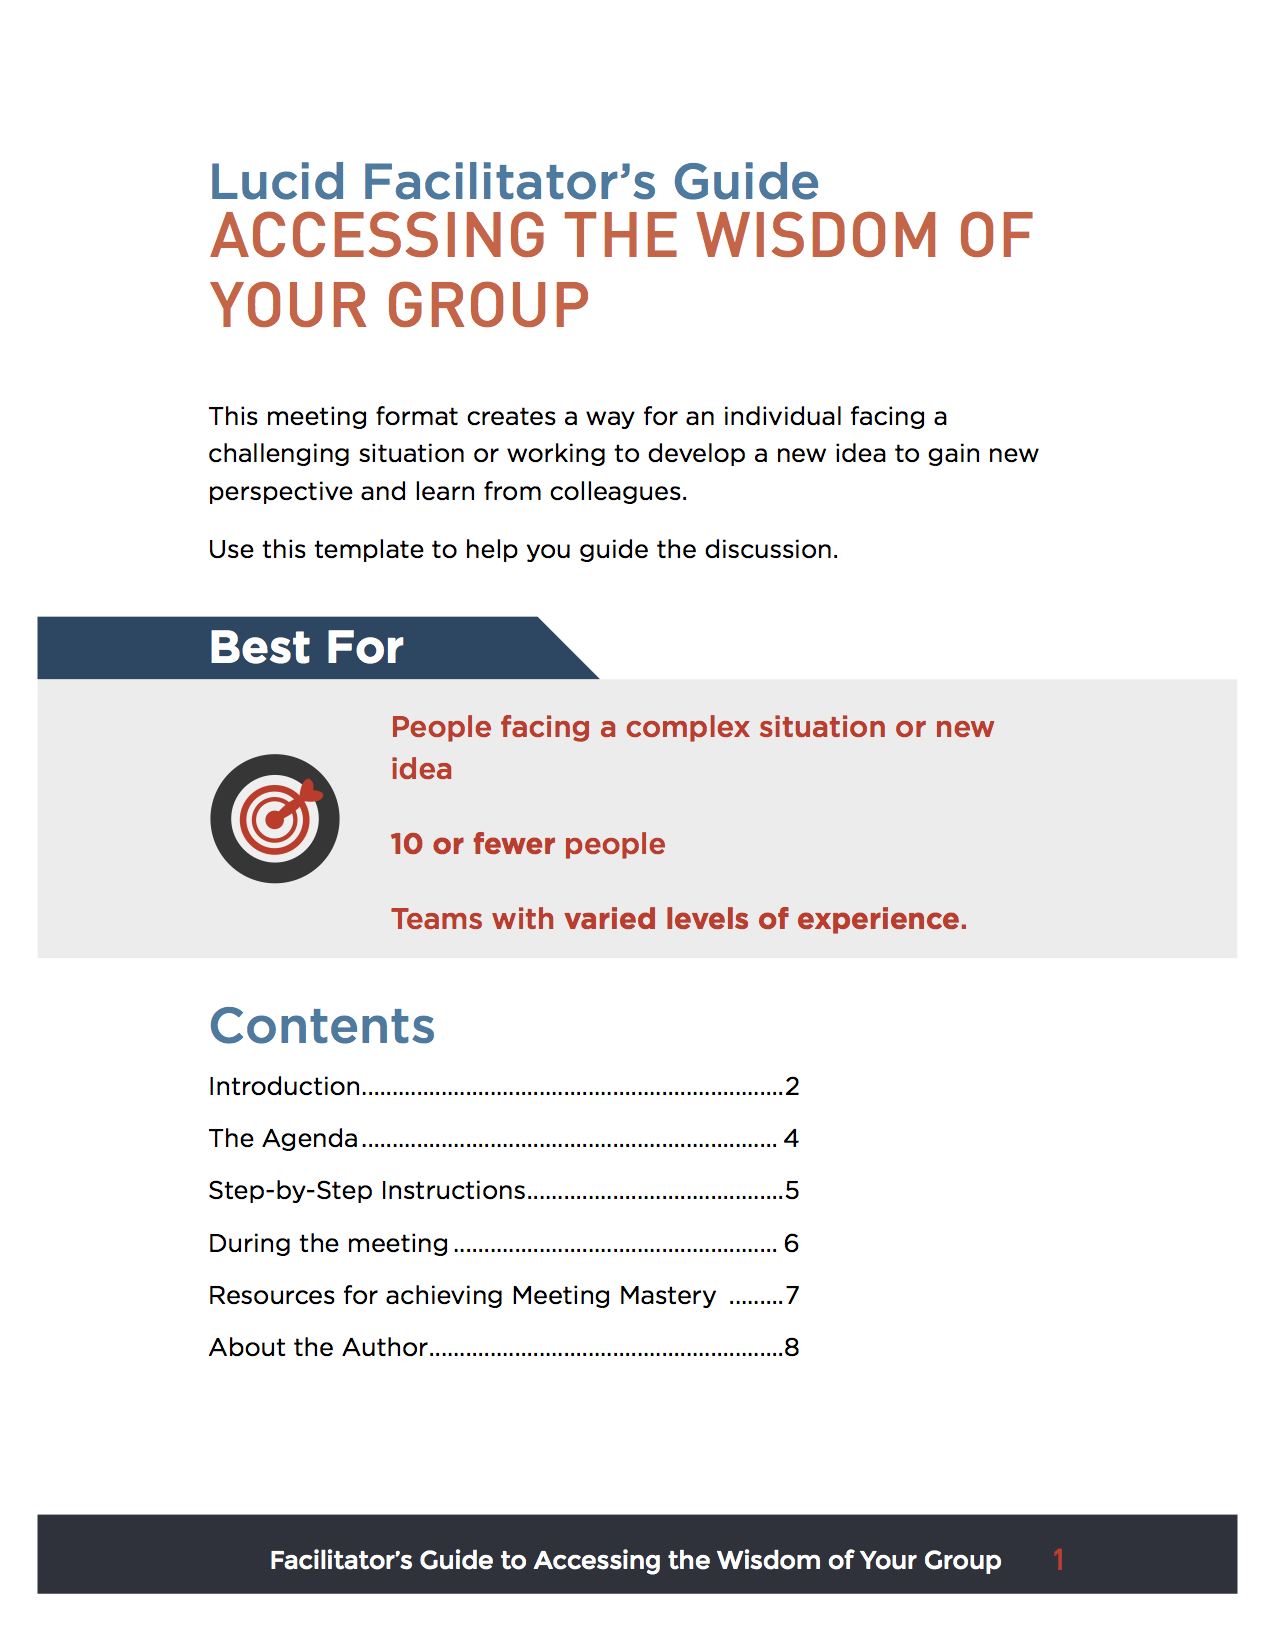 Accessing-Wisdom-Facilitators-Guide.png